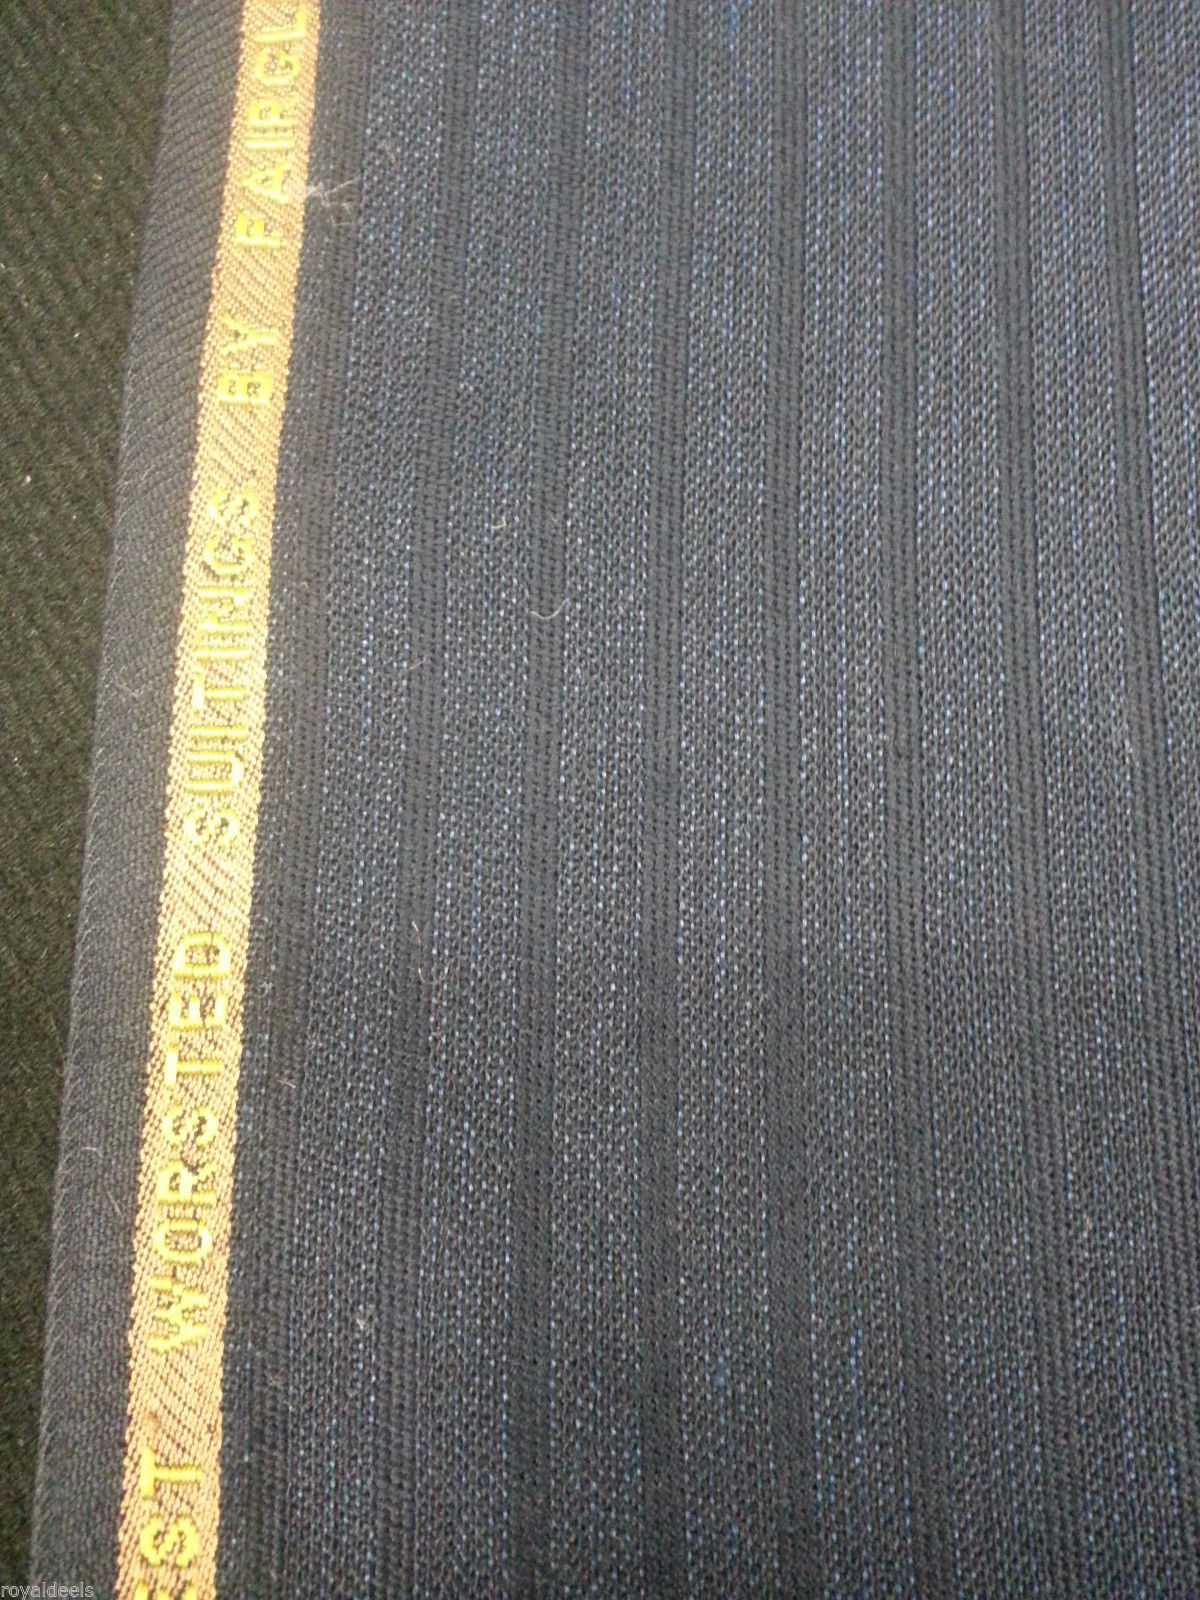 6 Yard 120'S ENGLISH FINE WOOL Wool Suit /Skirt  Fabric Blue Striped - MSRP $495